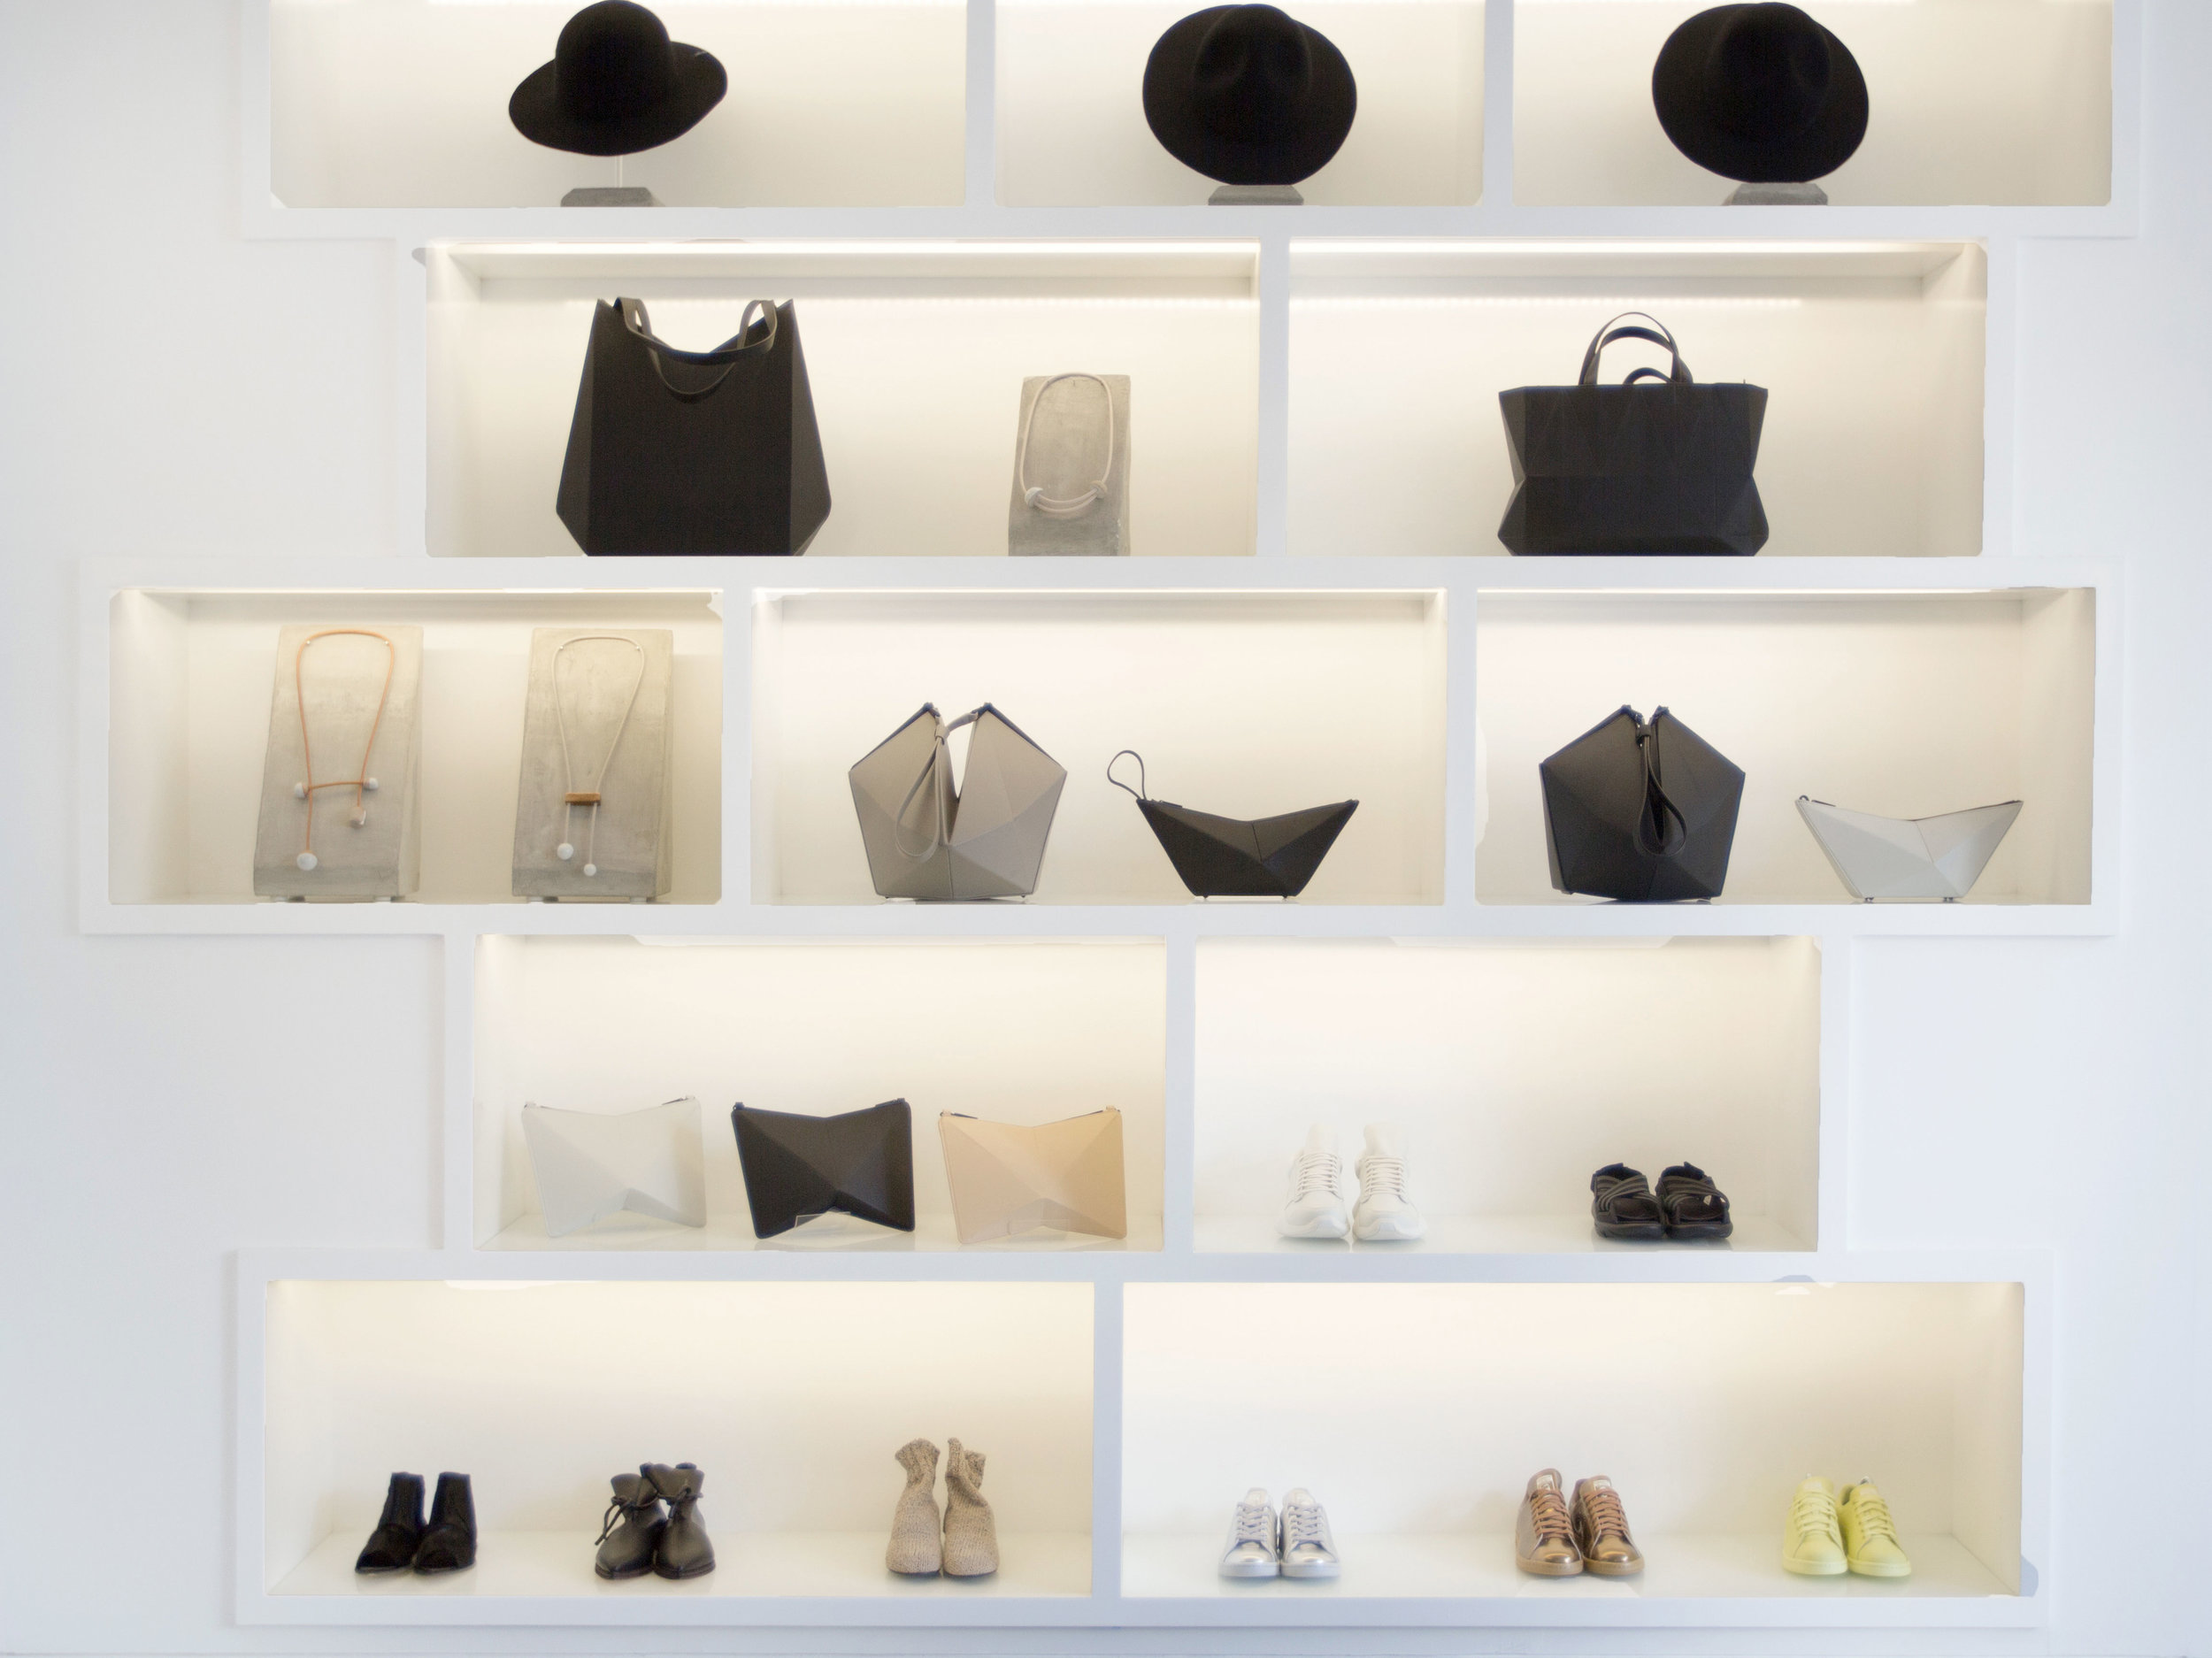 instore-display2-THE-CELECT2.jpg